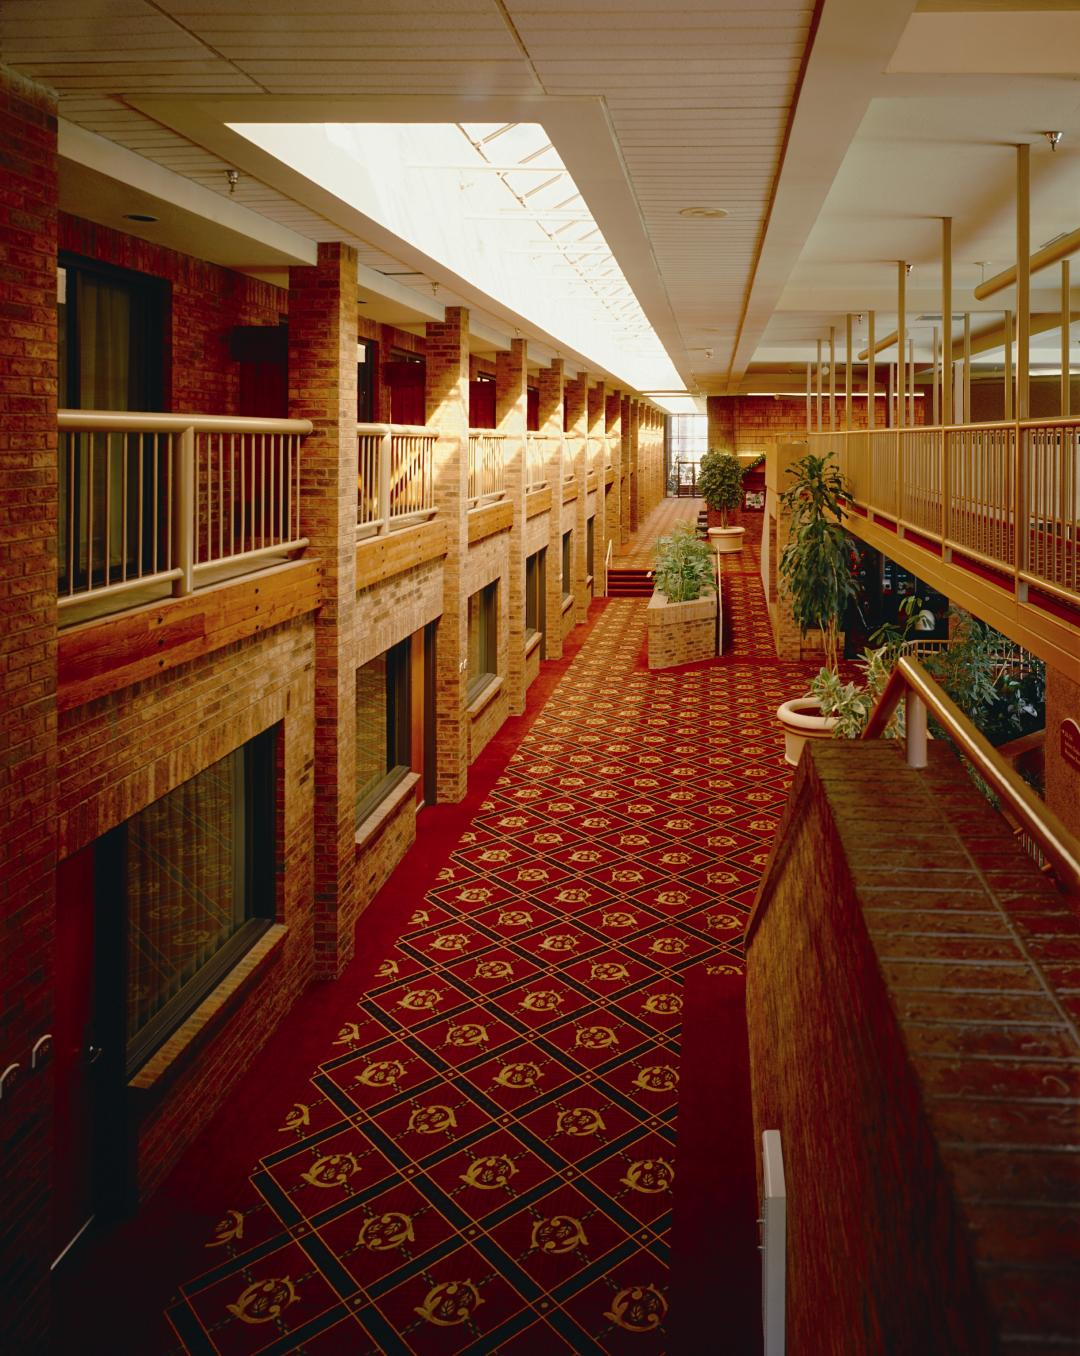 Red carpeted interior hallways